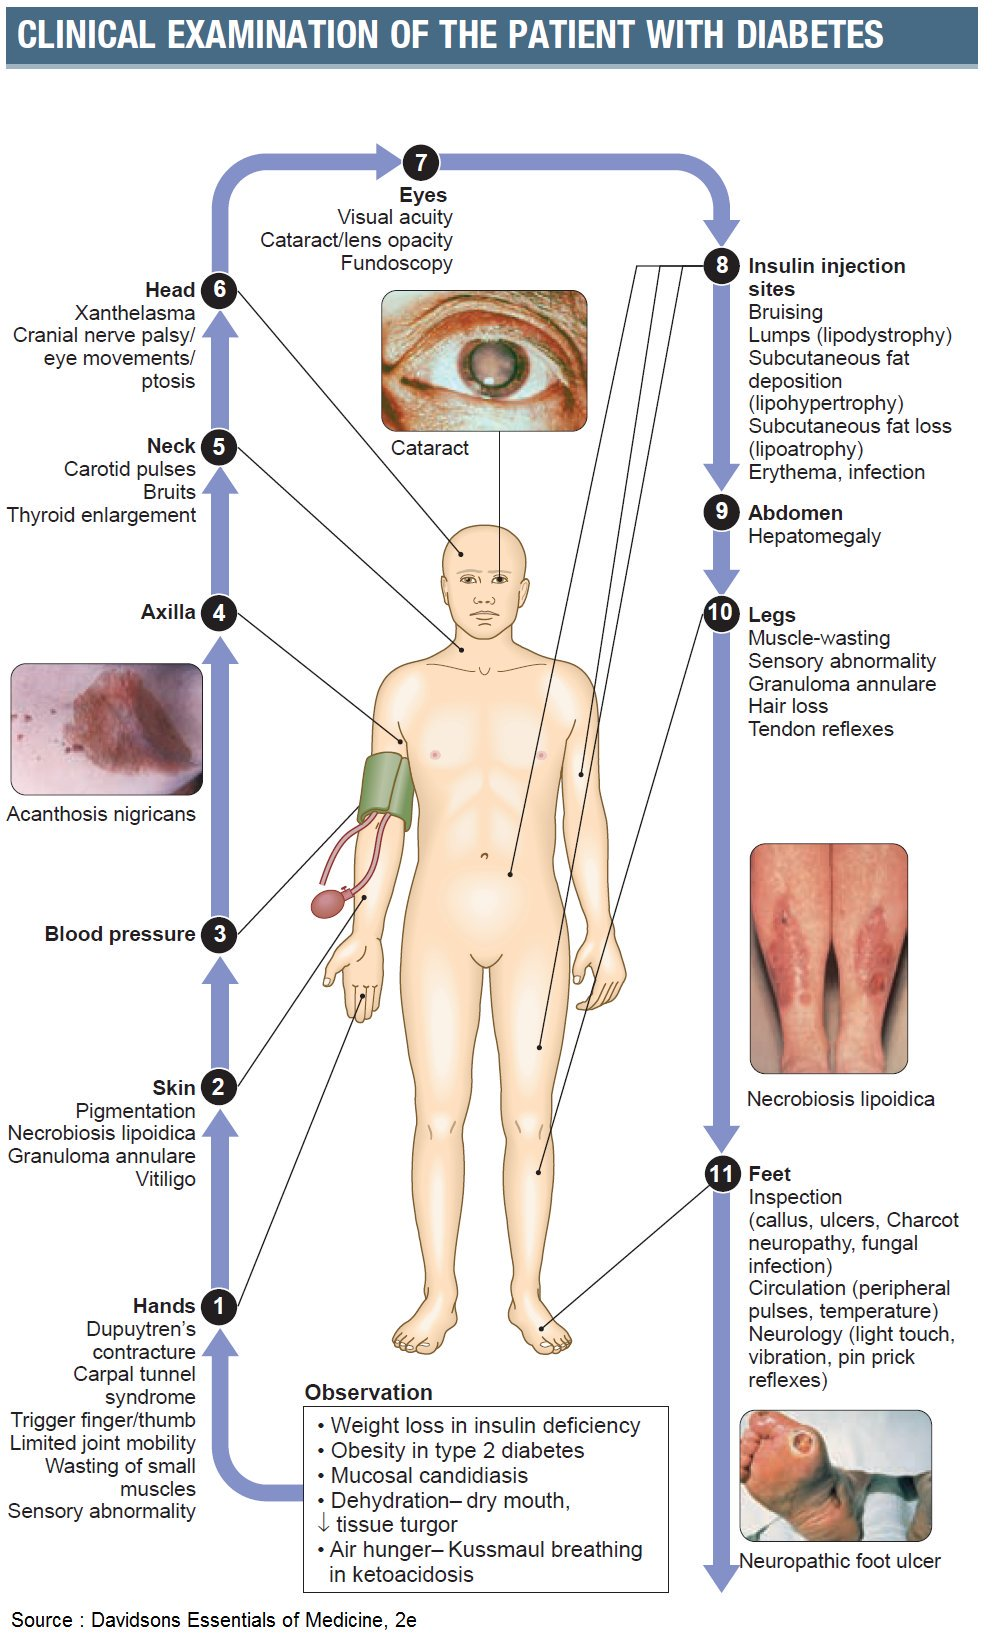 Clinical Examination of the Patient with Diabetes